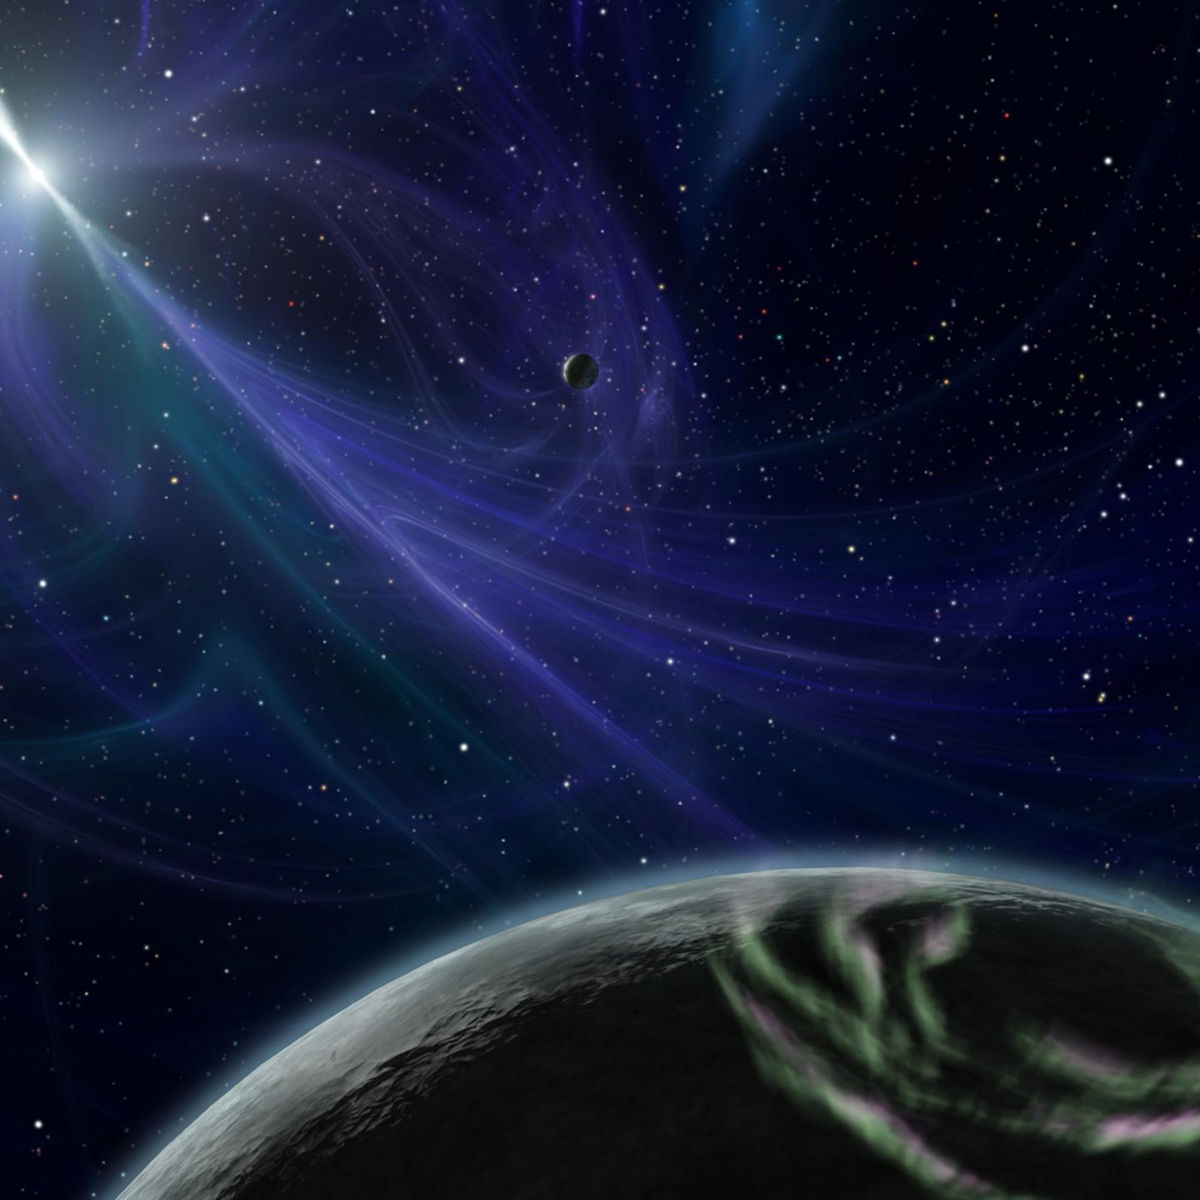 Artwork depicting the three planets orbiting the pulsar PSR B1257_12. Credit: NASA/JPL-Caltech